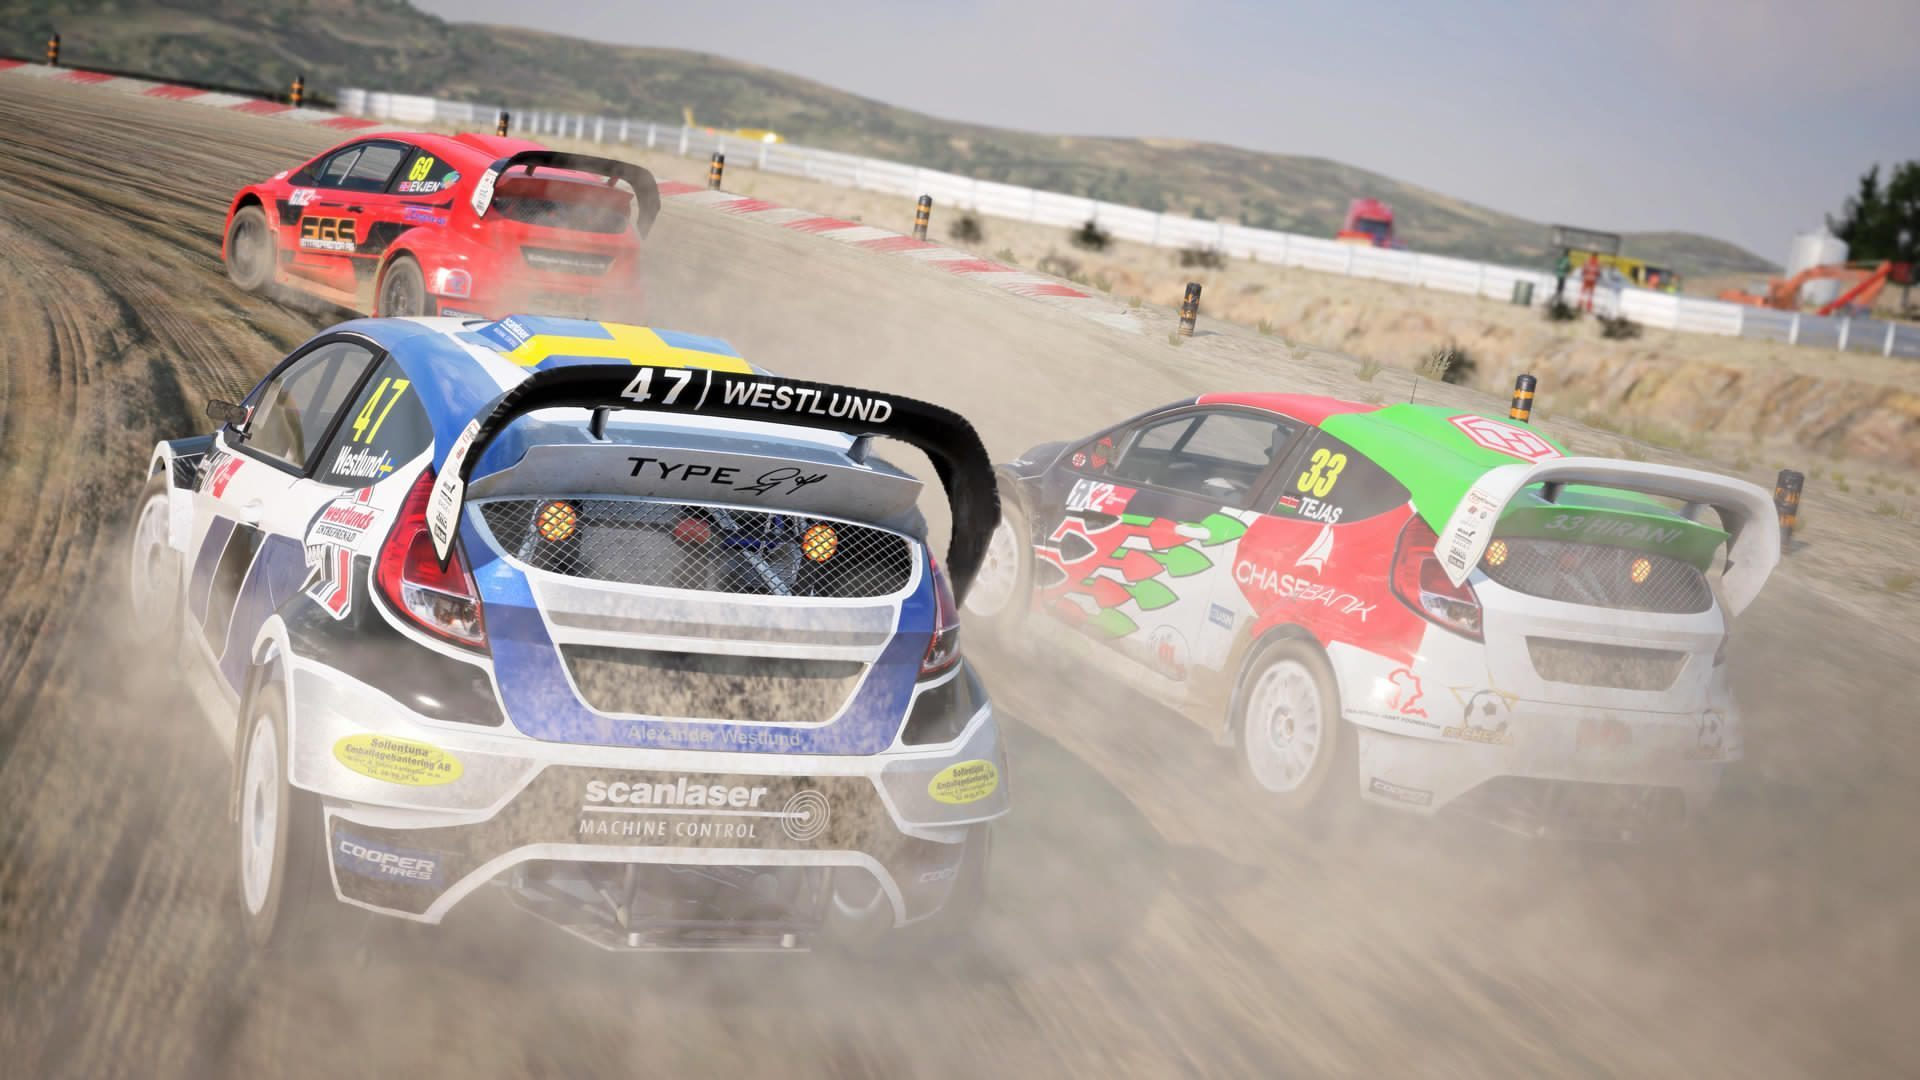 dirt 4 gameplay video rally landrush rallycross shown off. Black Bedroom Furniture Sets. Home Design Ideas